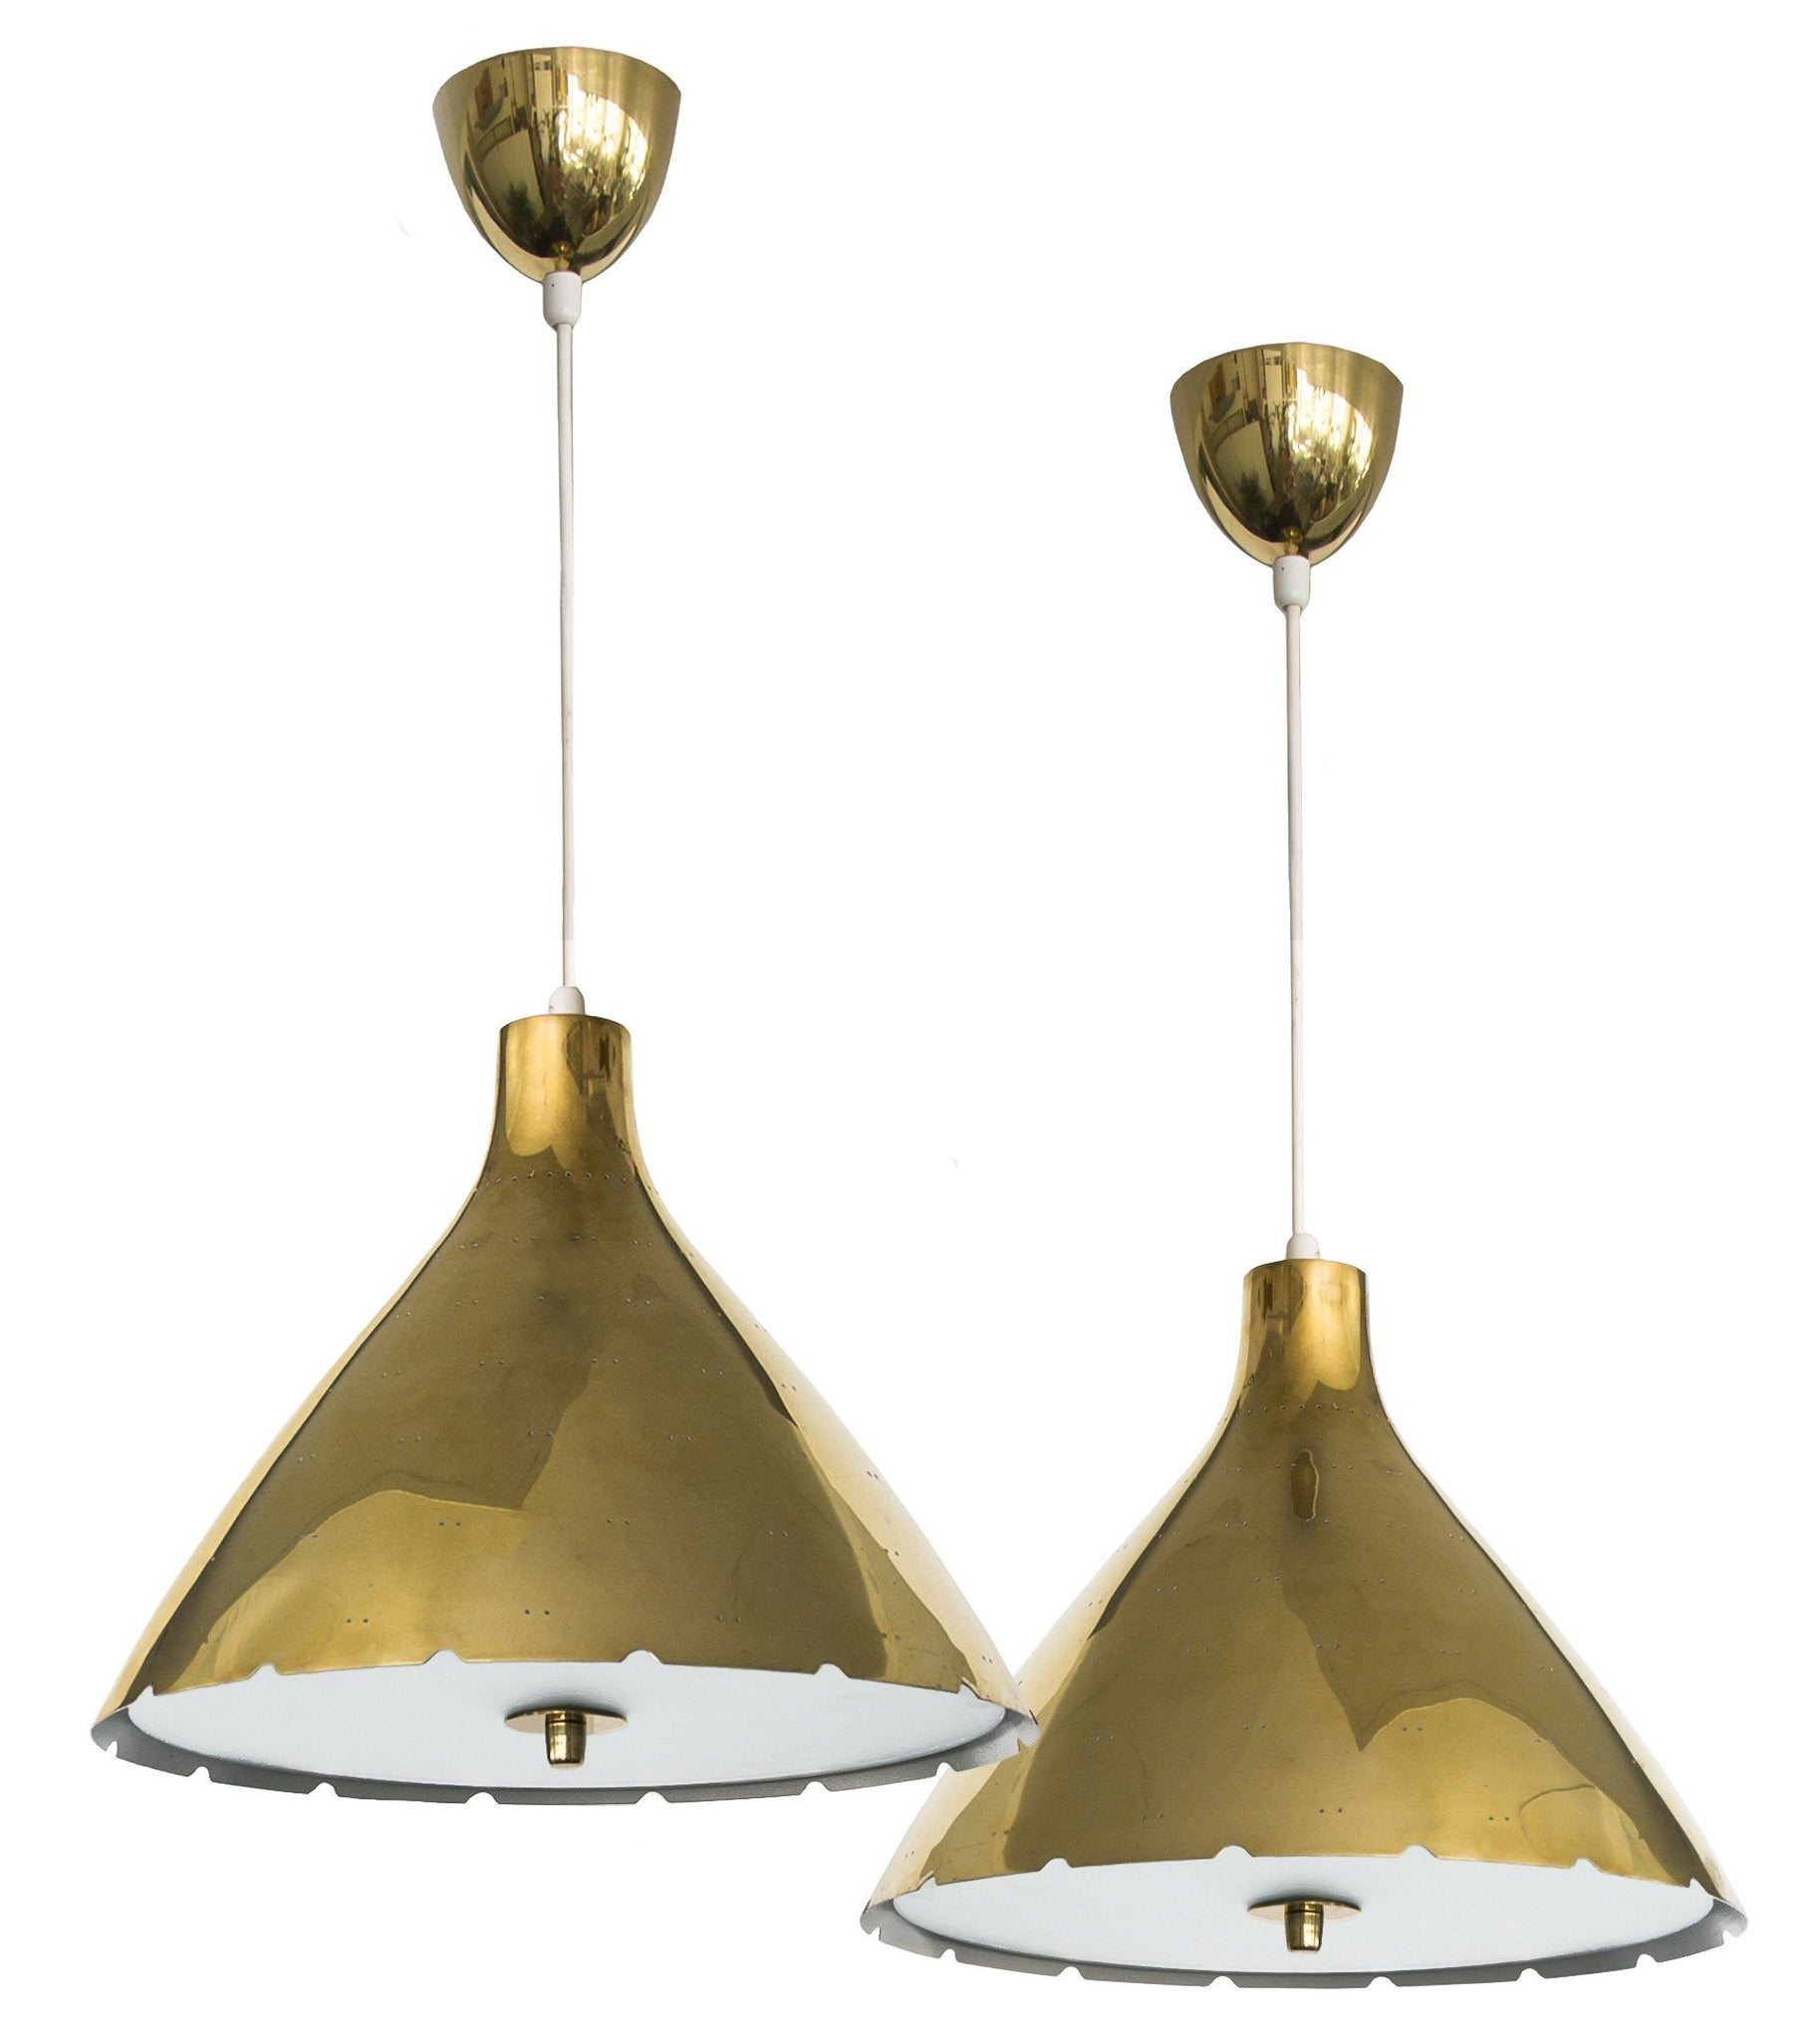 Pair of Paavo Tynell Ceiling Lamps, Taito Oy - The Exchange Int